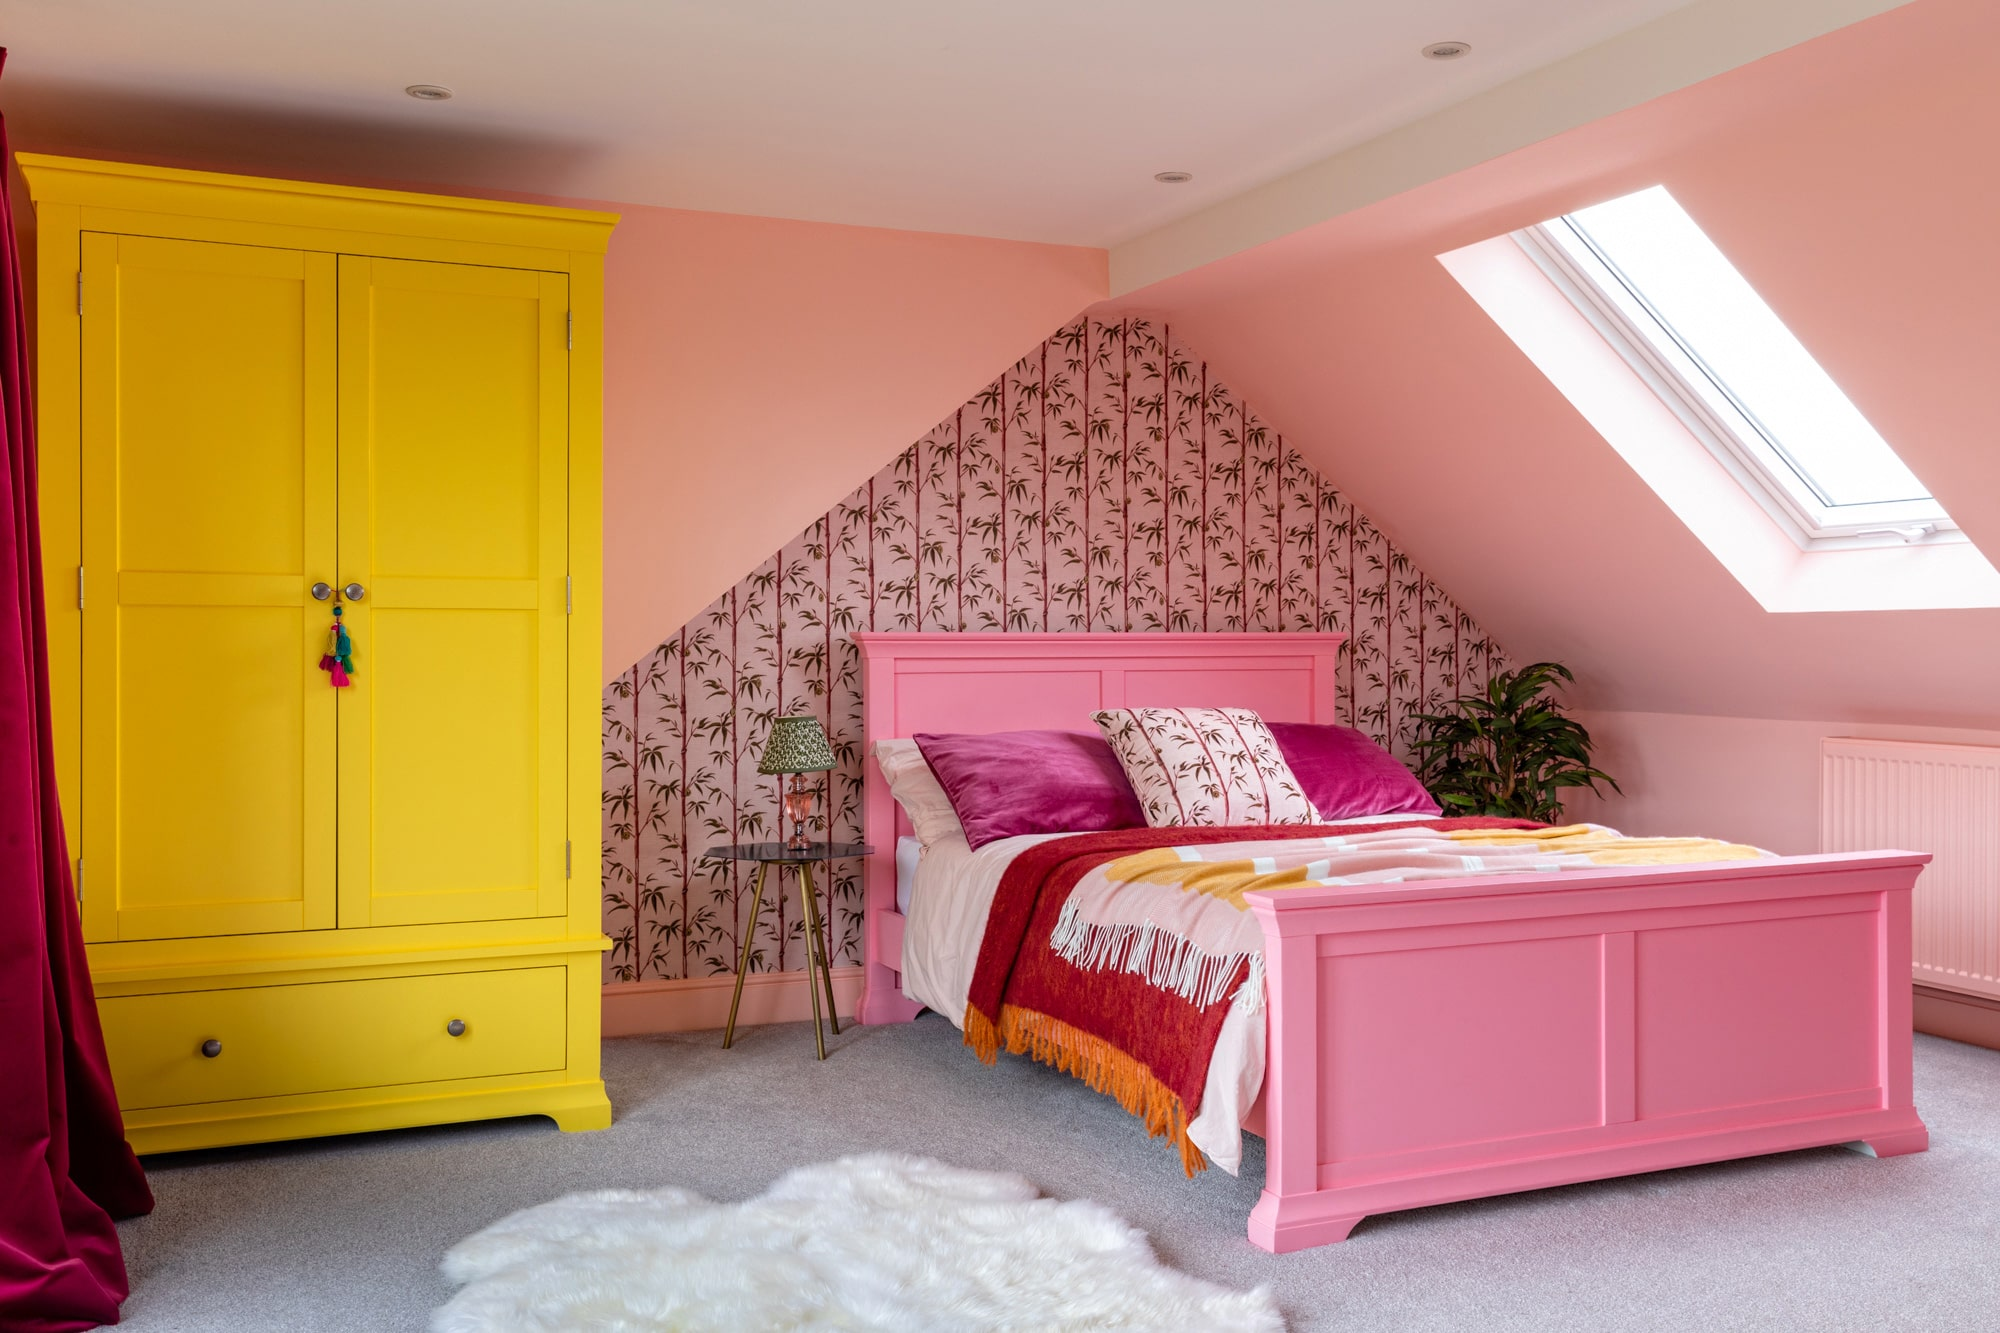 pink girl's bedroom: pink bed, floral wallpapers feature walls, glass bedside table; yellow wardrobe